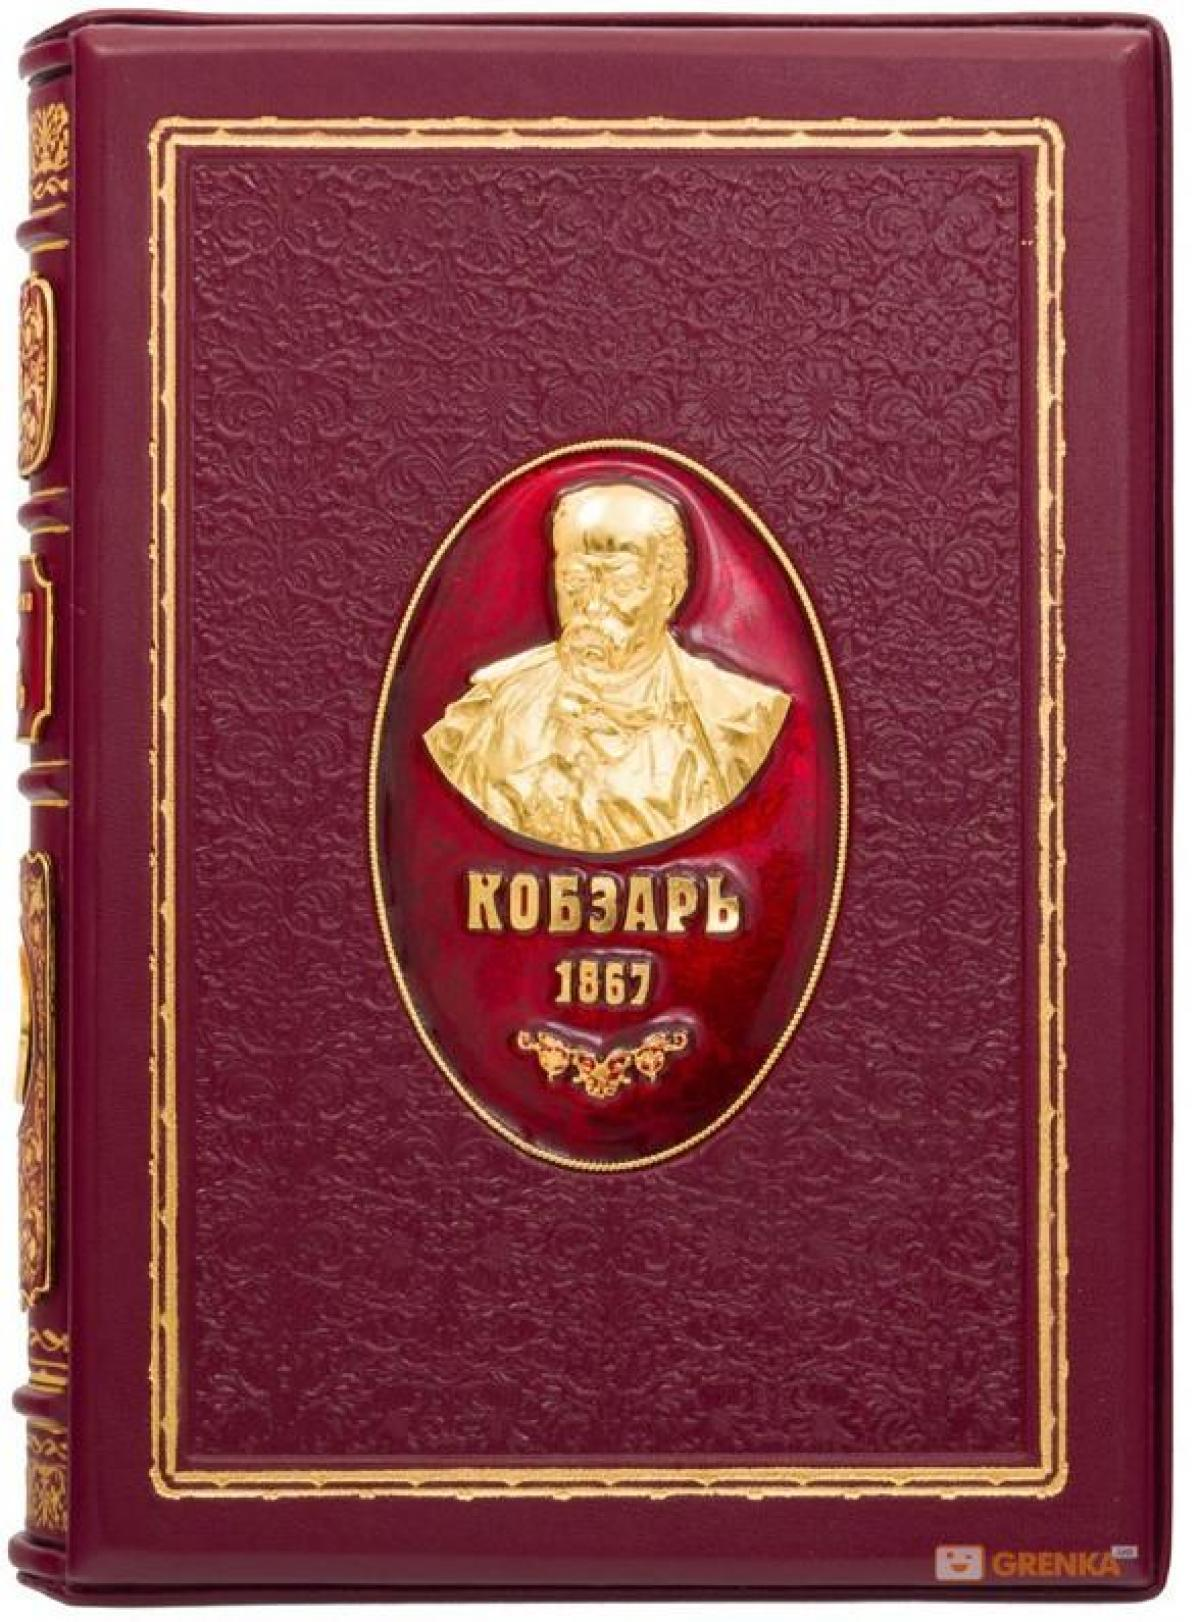 "Gift book ""Kobzar"" by Taras Shevchenko 1867 edition. Photo №3. 